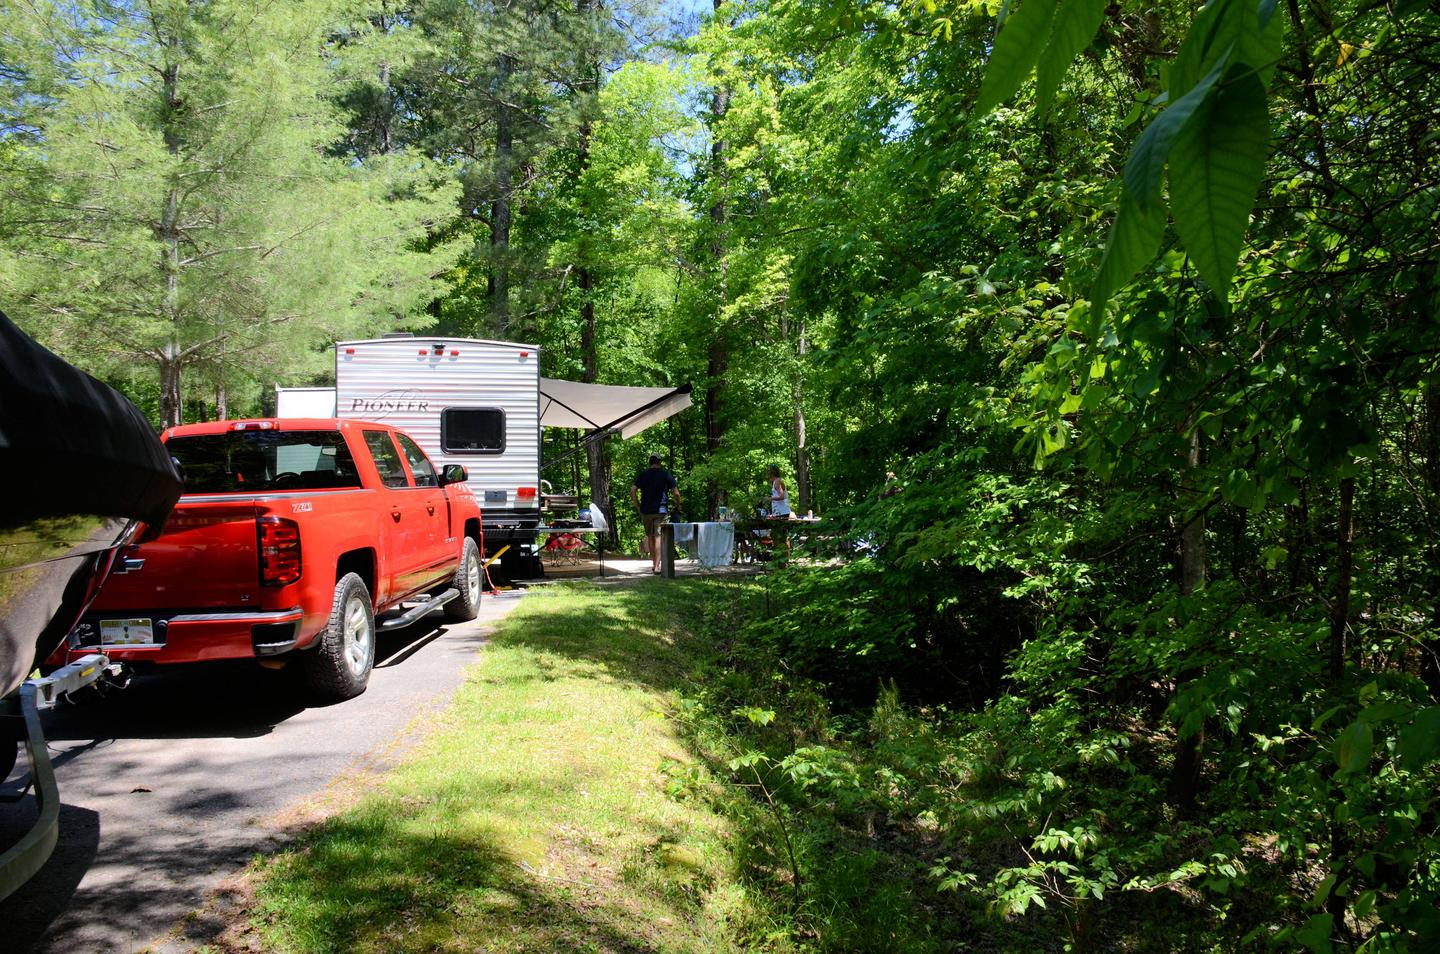 Pull-thru entrance, driveway slope, awning side clearance.McKinney Campground, campsite 116